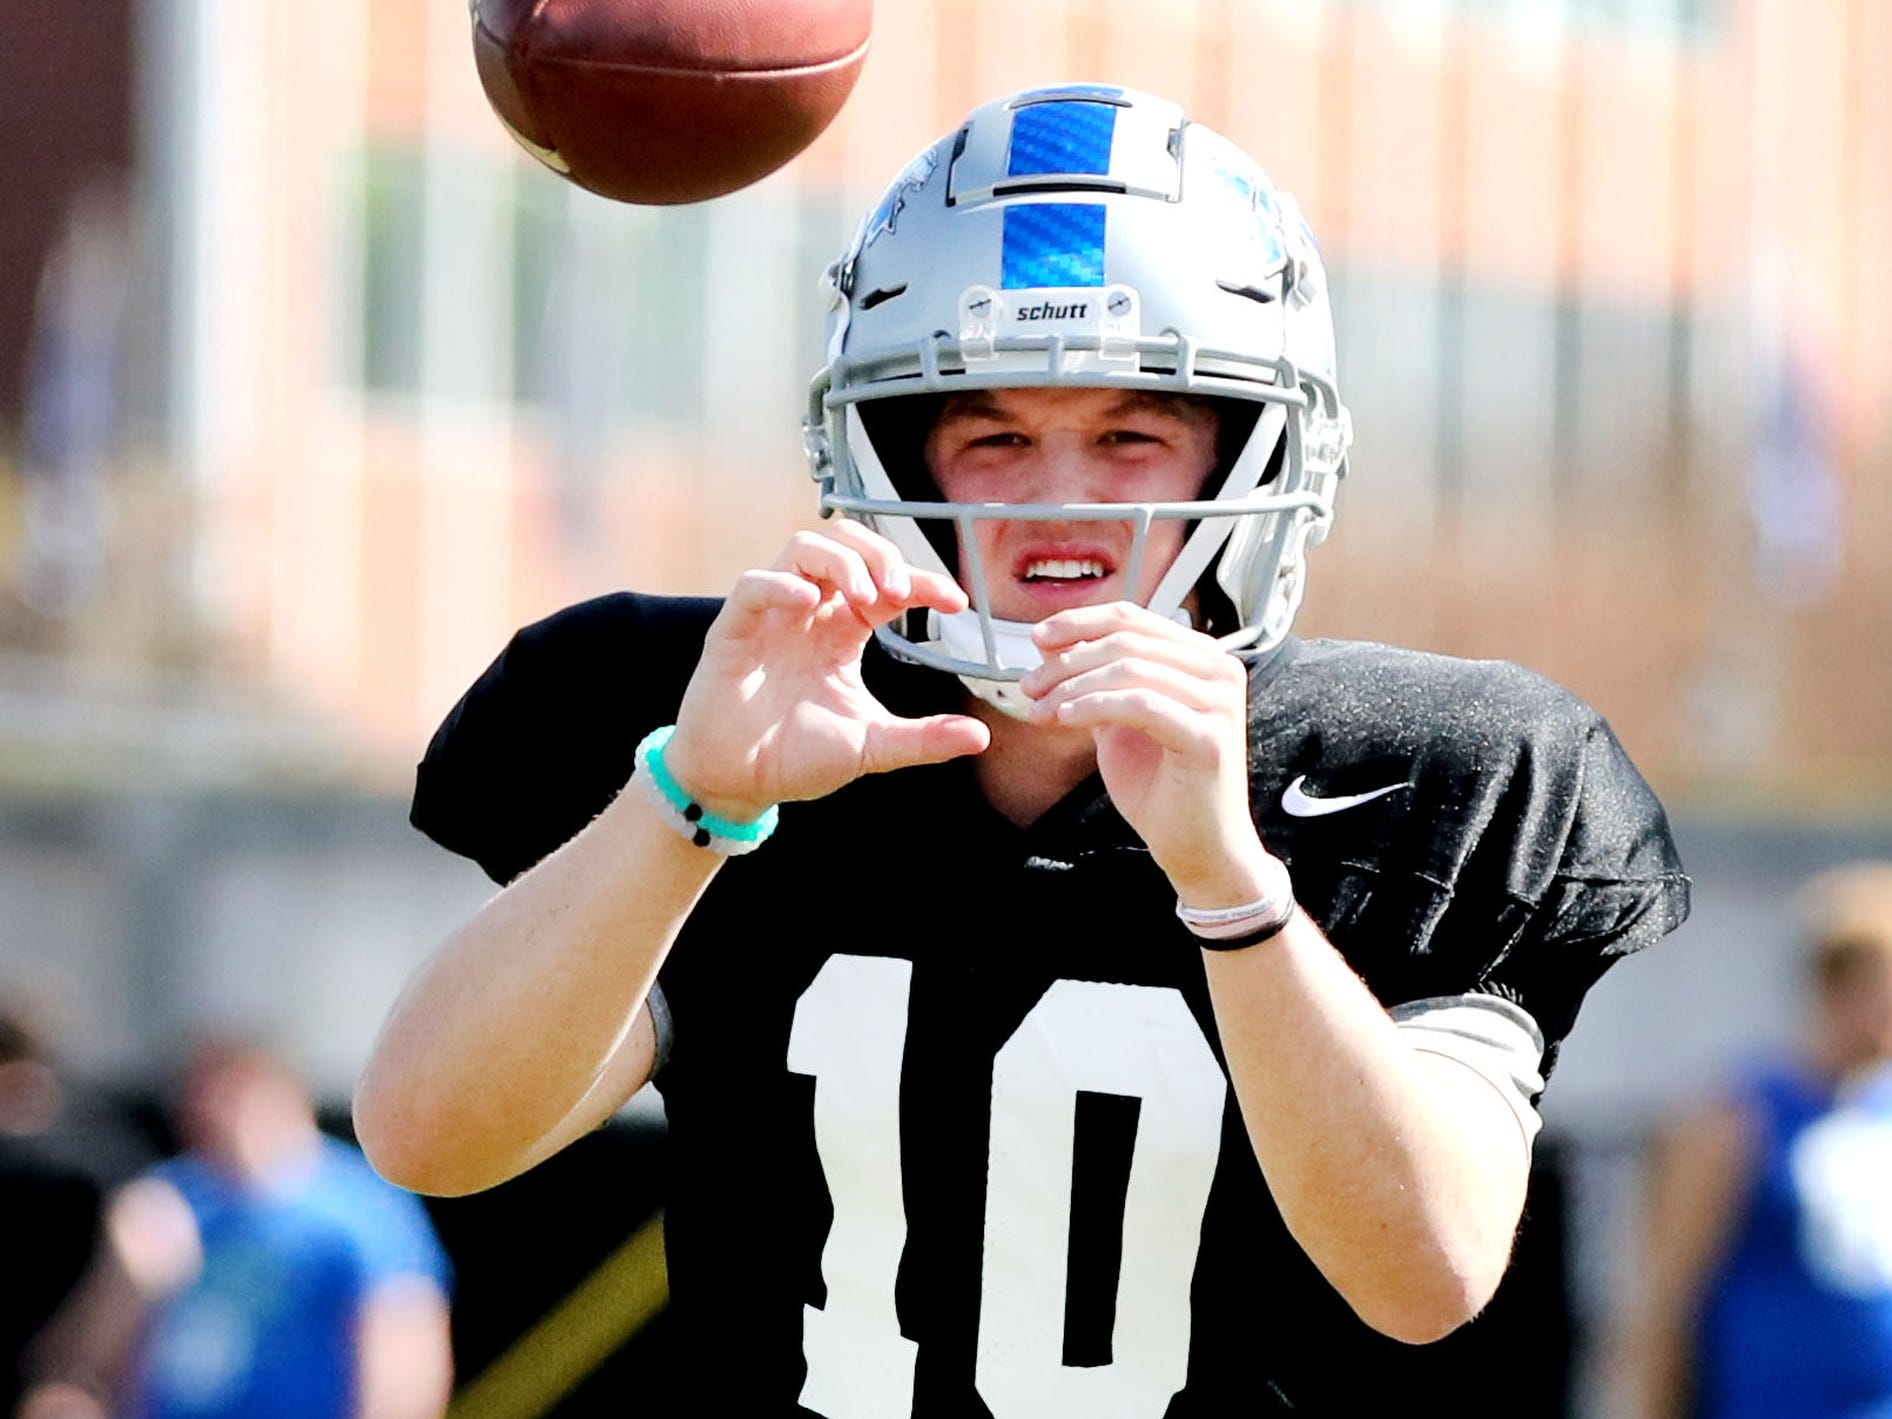 MTSU's quarterback Asher O'Hara (10) waits for the snap to catch the ball and pass during MTSU's football practice, in Murfreesboro on Tuesday April 9, 2019.